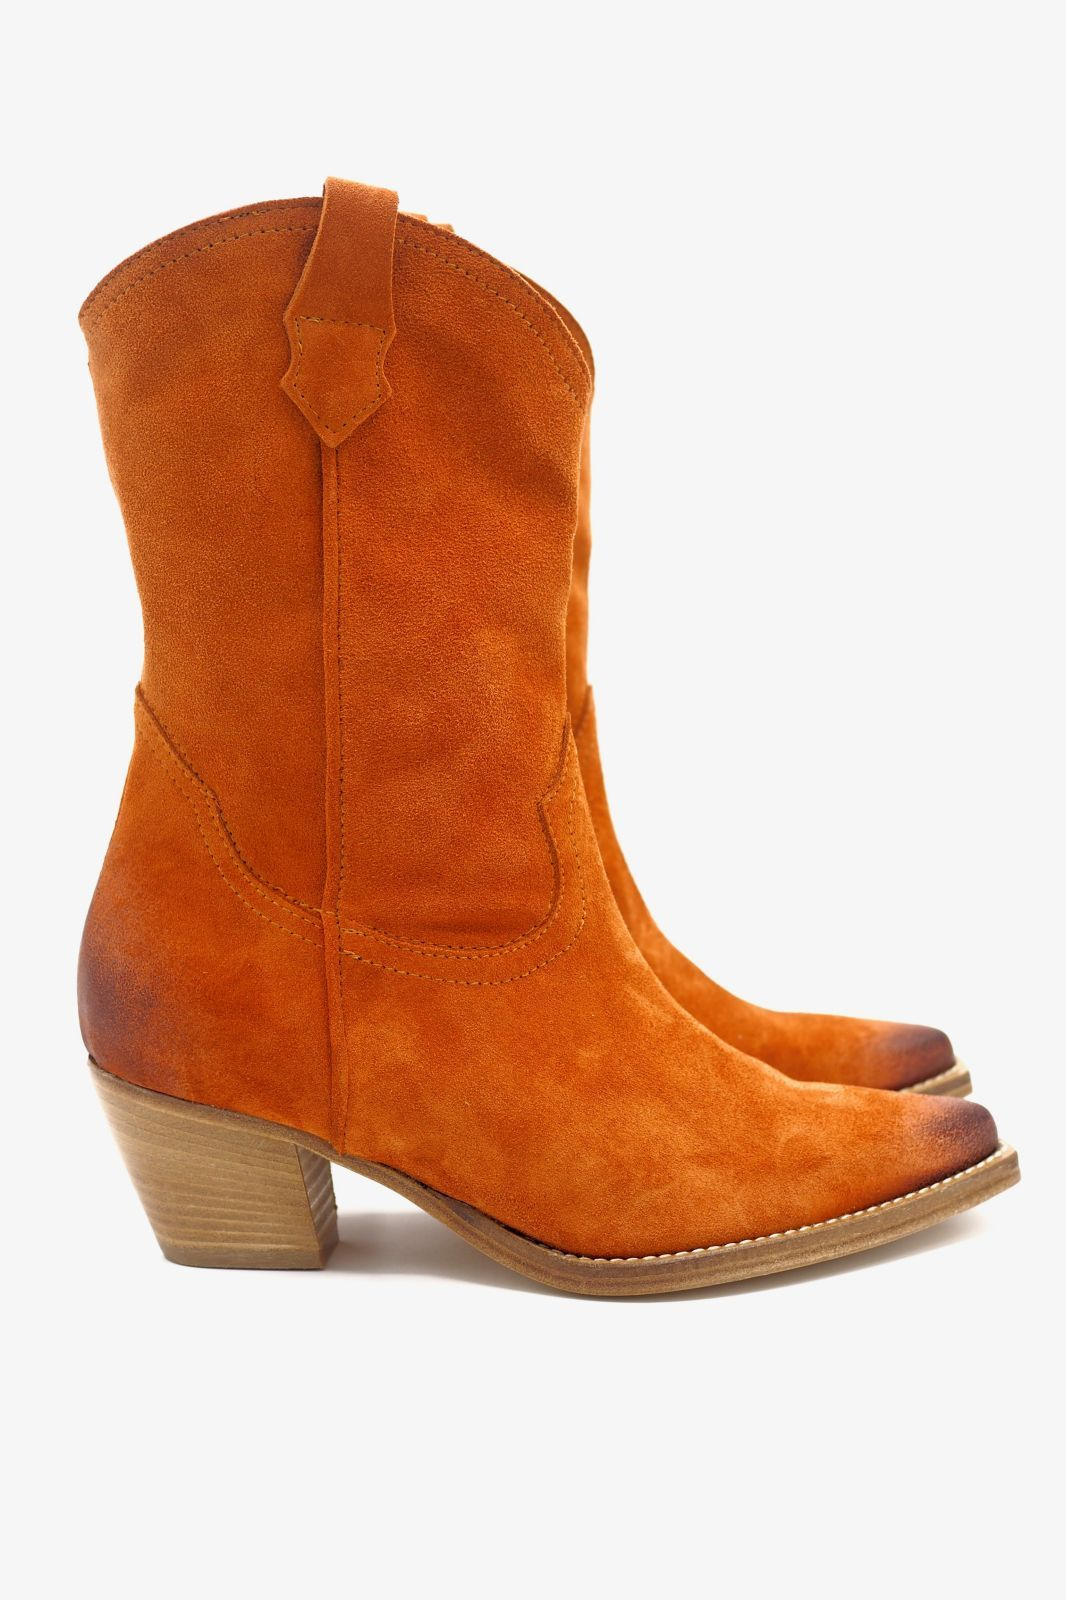 Curiosity boots Orange femmes (CURI-Santiag ½HI - 1555 ½ Tal. botte rouille) - Marine | Much more than shoes